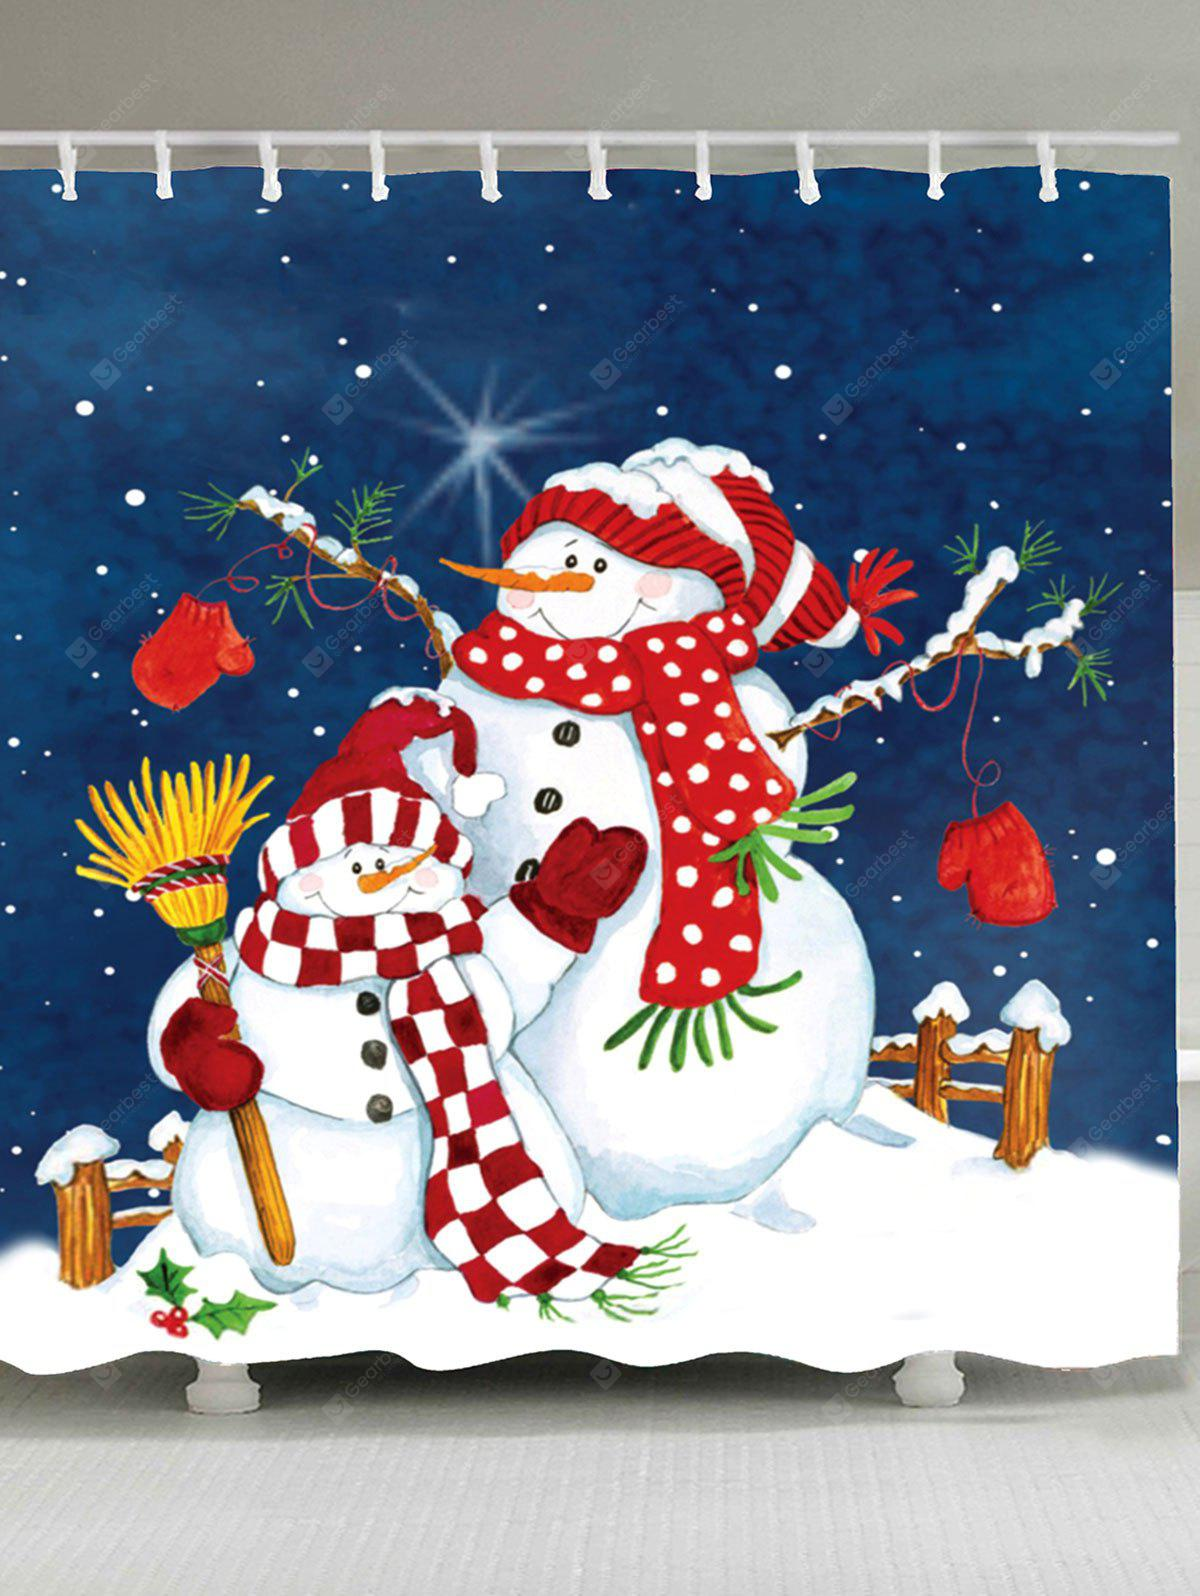 A Couple of Christmas Snowmen Shower Curtain